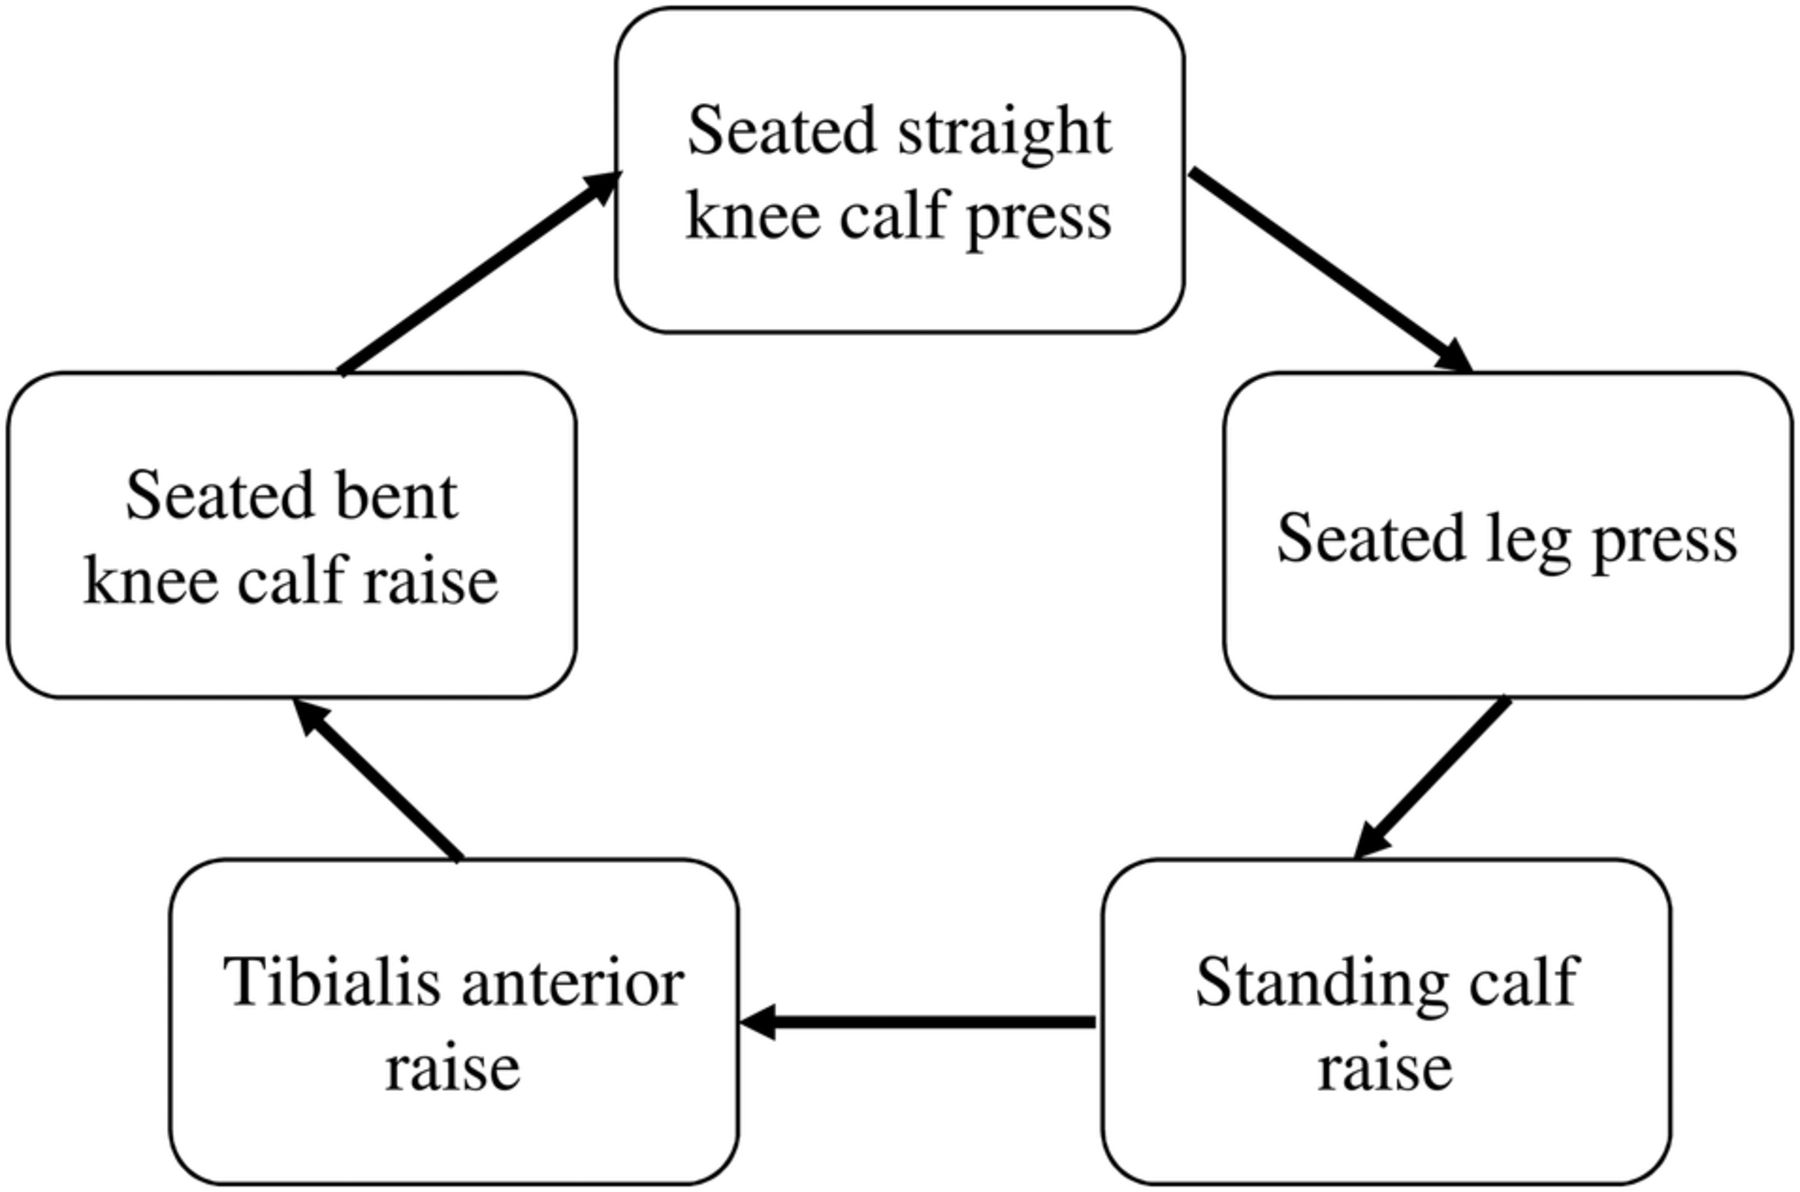 Fast Cp Protocol Of A Randomised Controlled Trial The Efficacy Parallel Resistance Circuit Download Figure